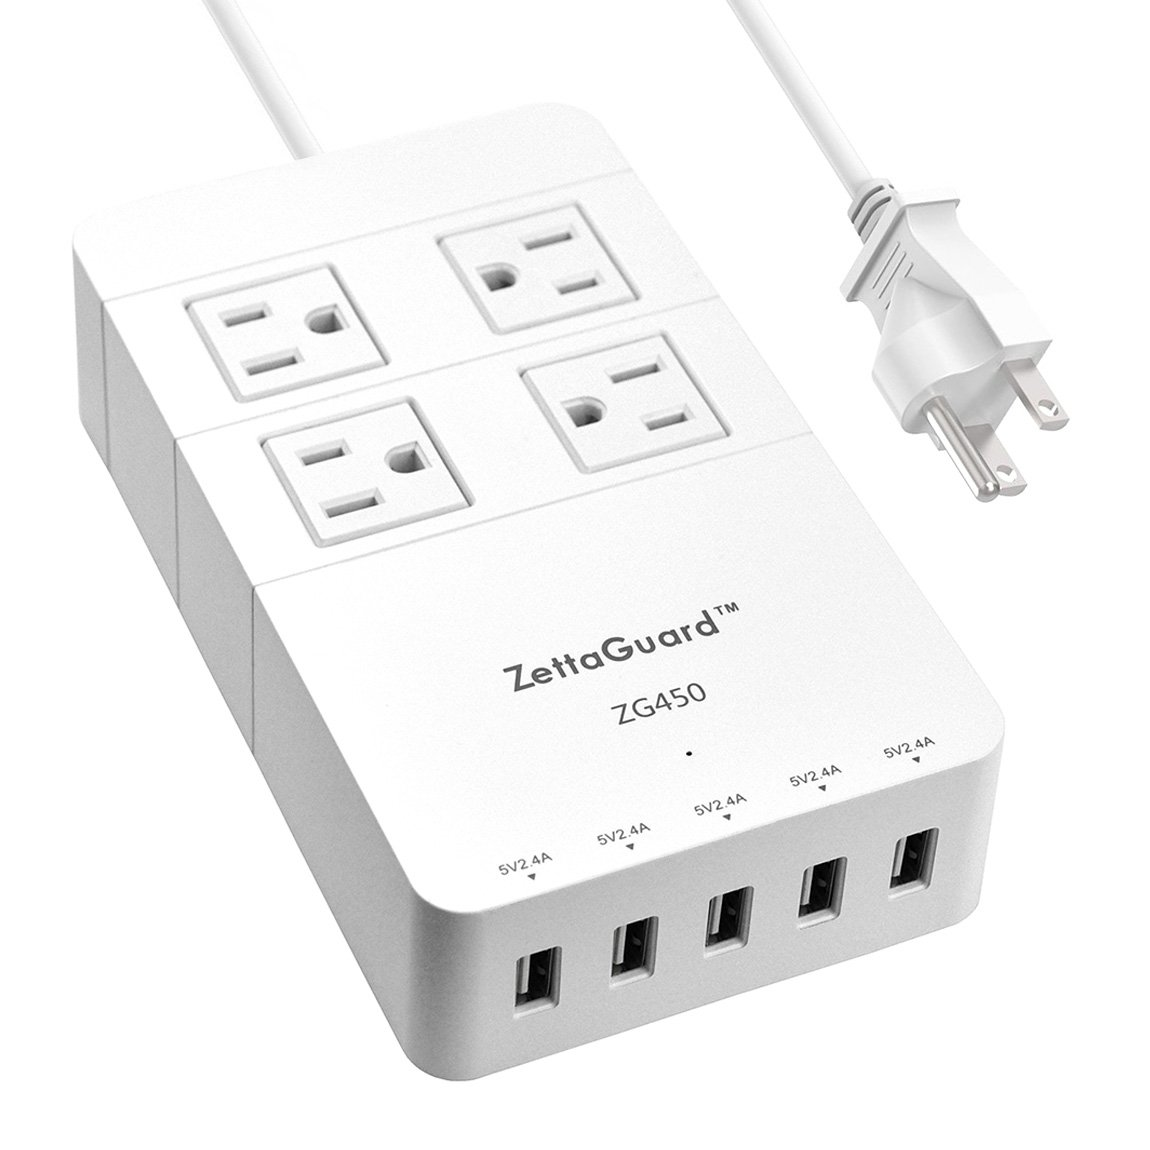 Zettaguard Mini 4-Outlet Travel Power Strip / Surge Protector with USB Charger, White (ZG450)